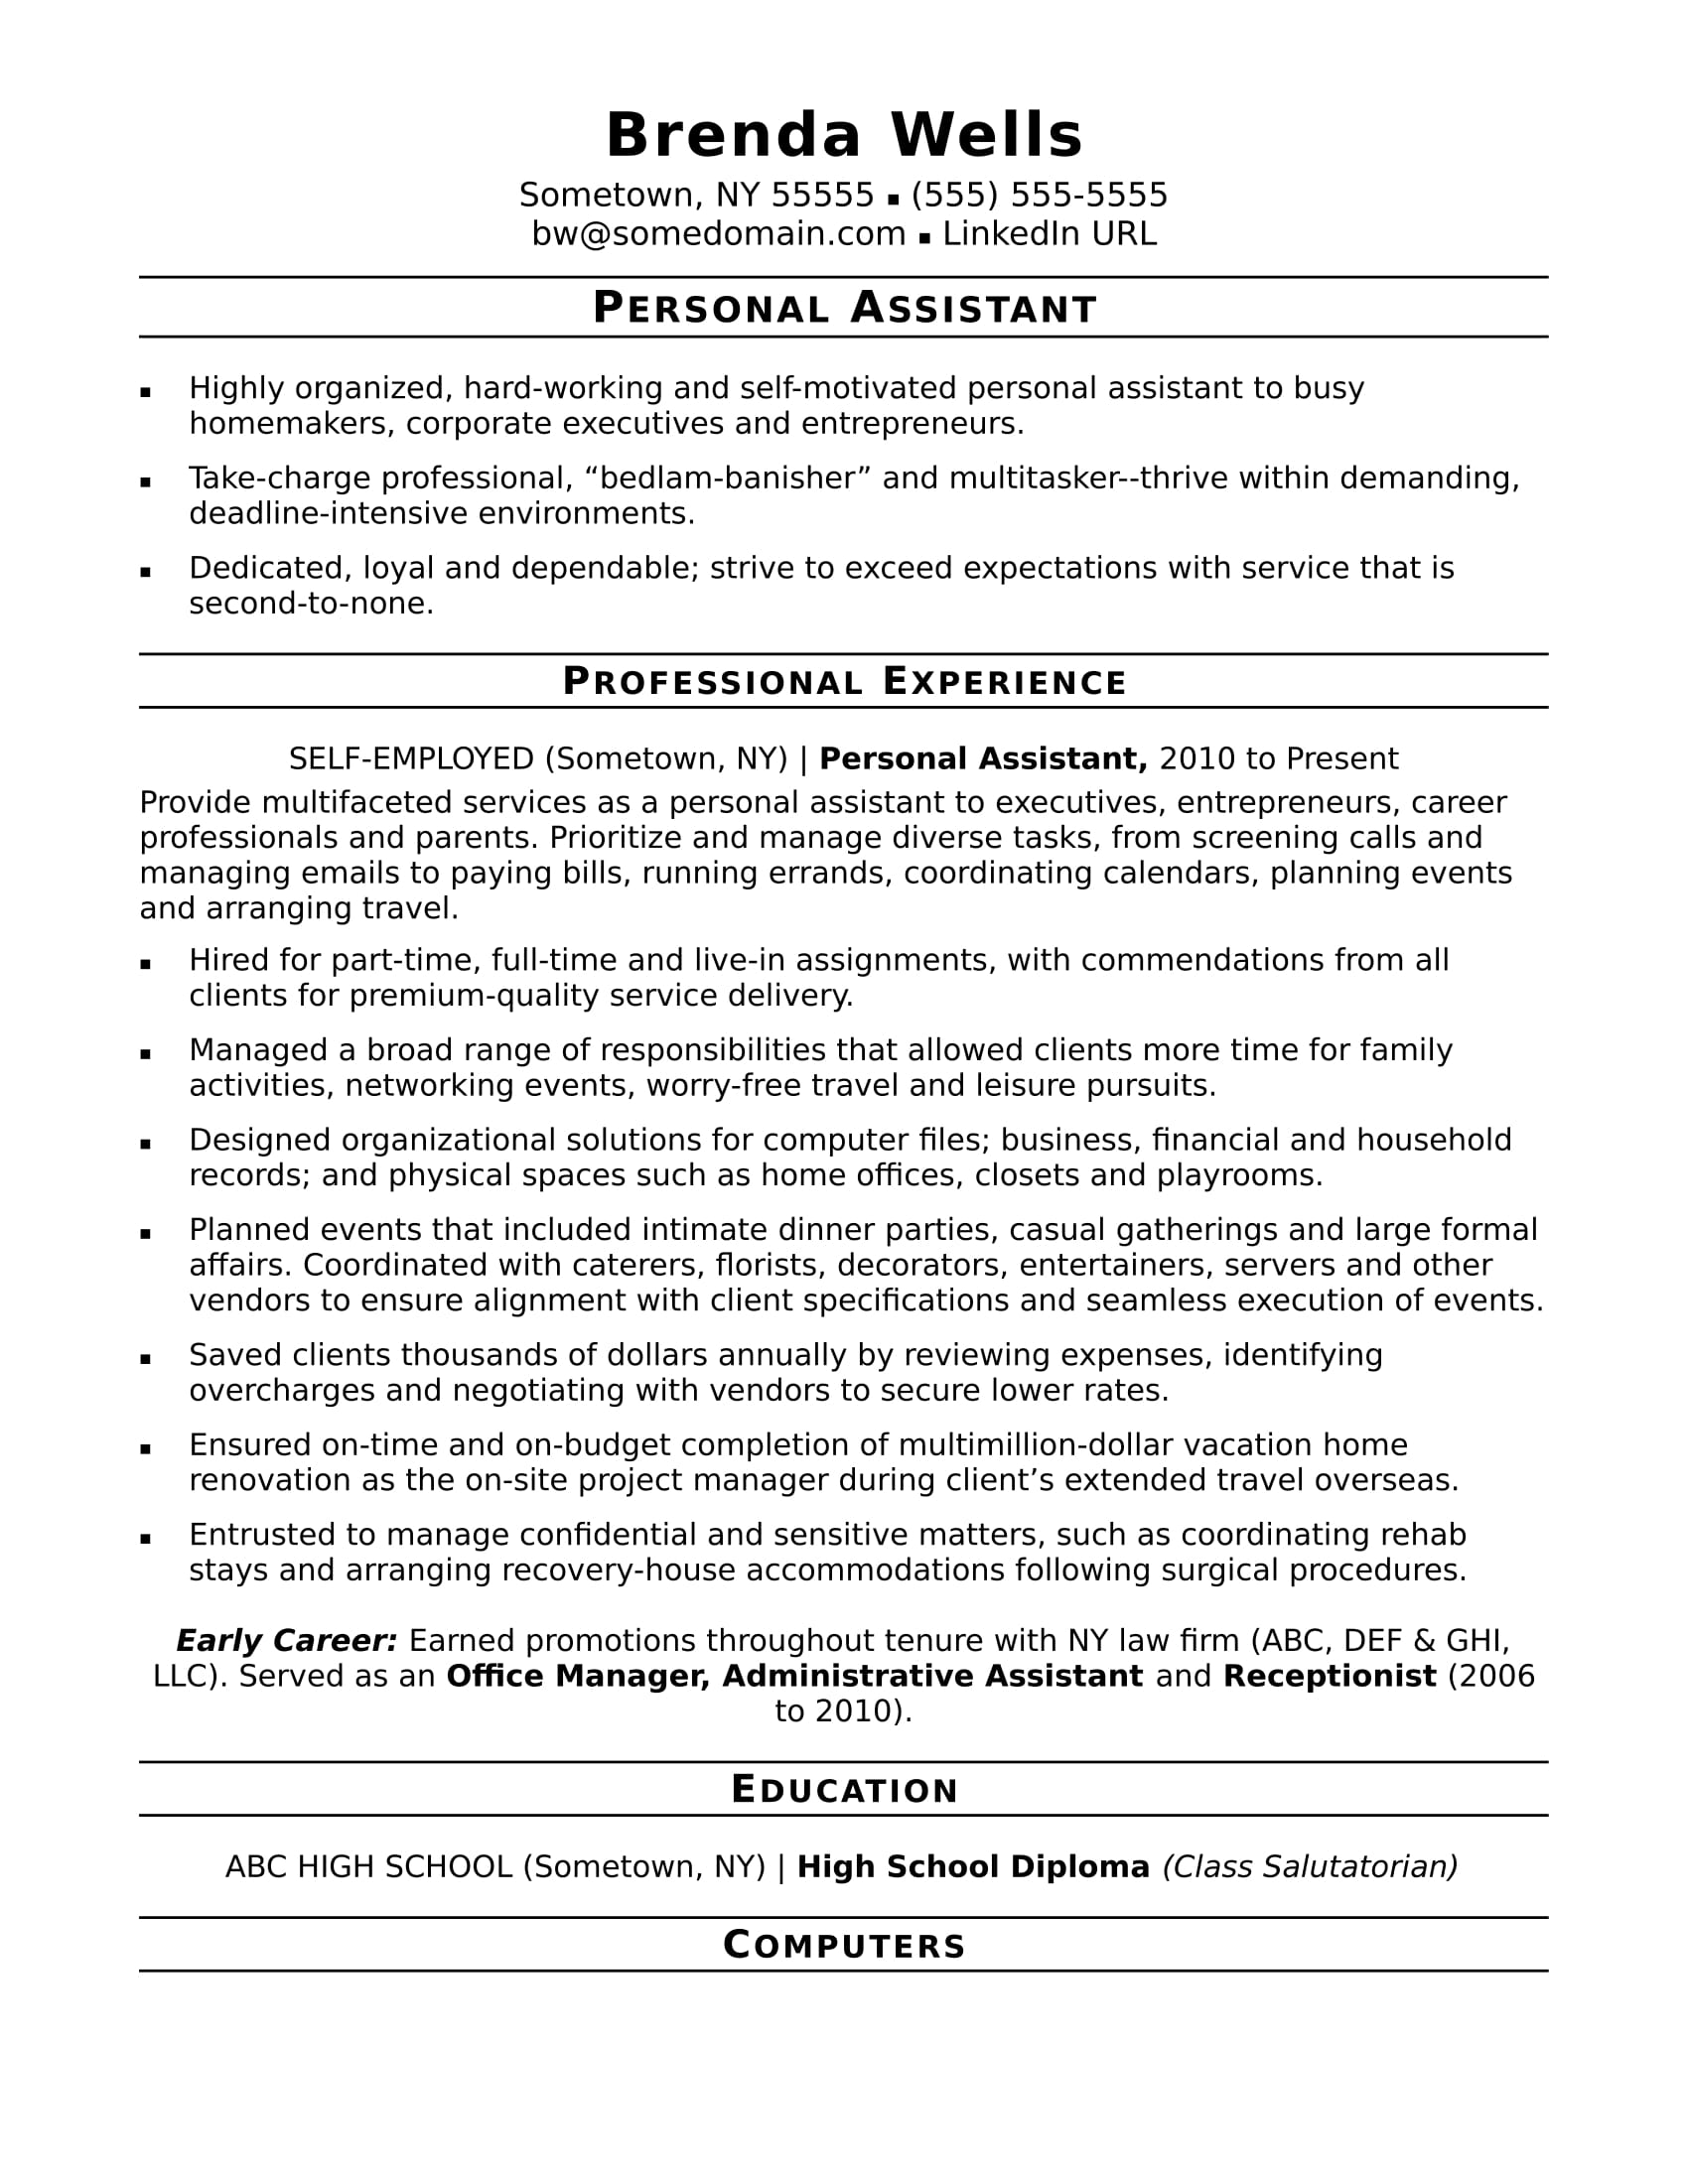 resume Administrative Assistant Resume Sample personal assistant resume sample monster com sample